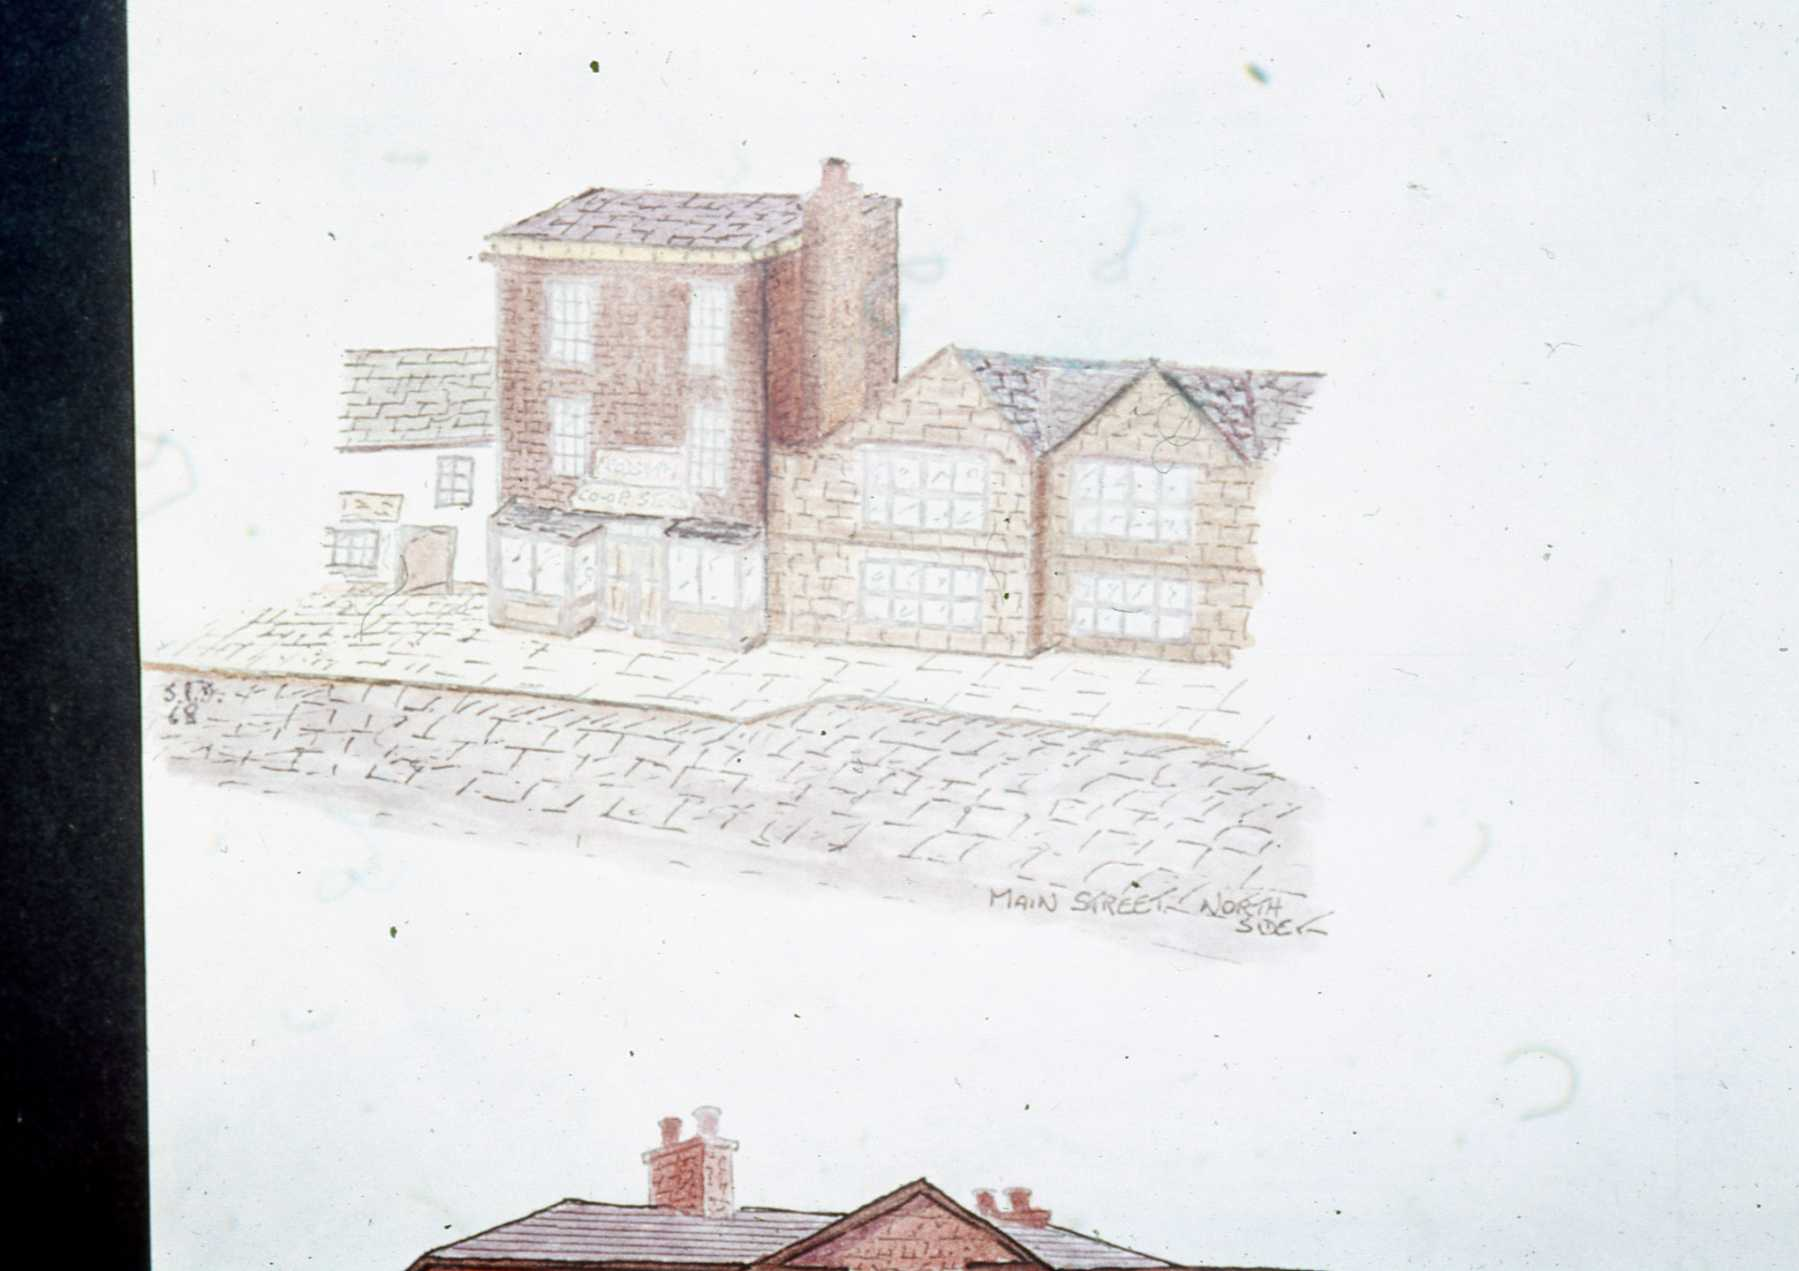 D4 021 Sketch of Bear's Paw and Frodsham Coop store.jpg